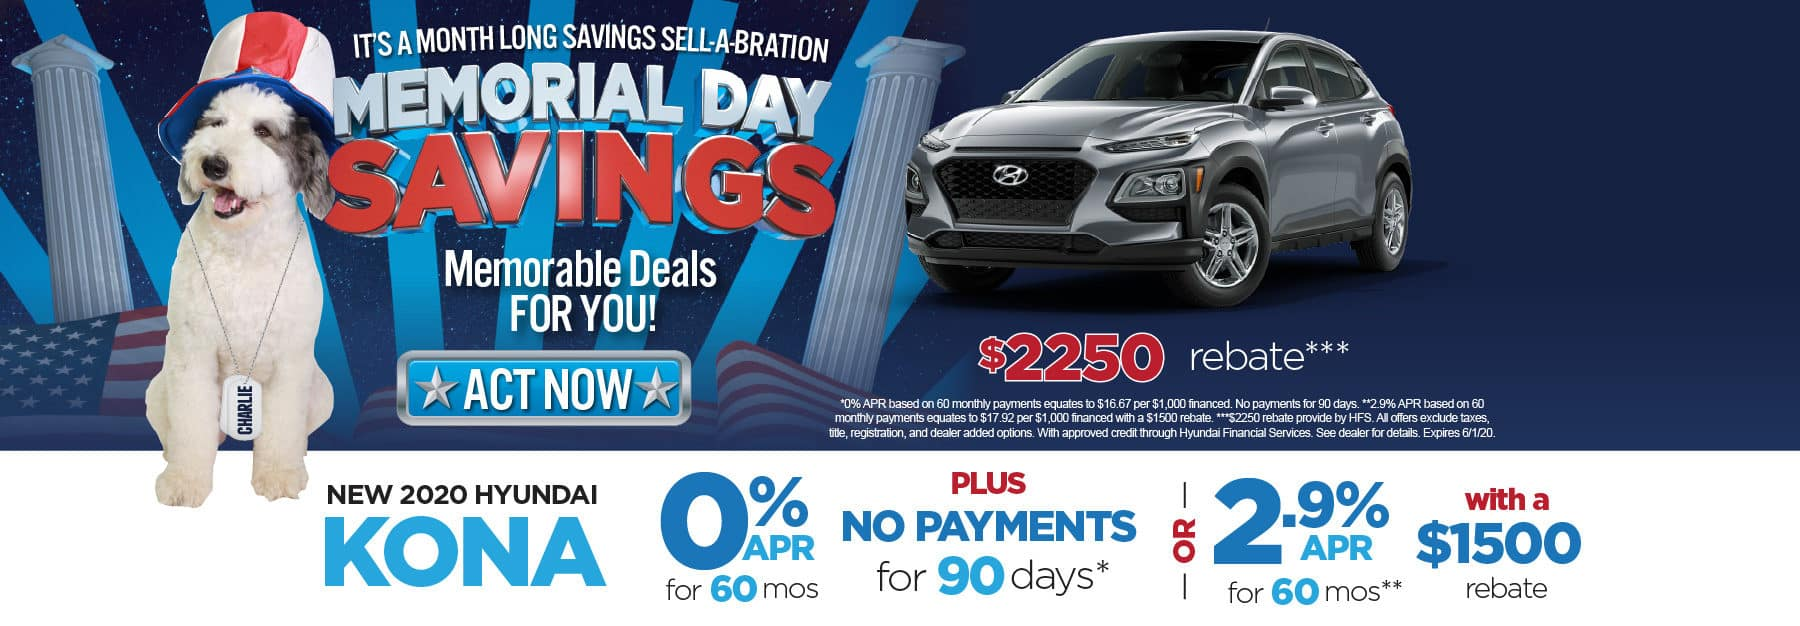 New 2020 Hyundai Kona 0% APR for 60 months. Click here to view inventory